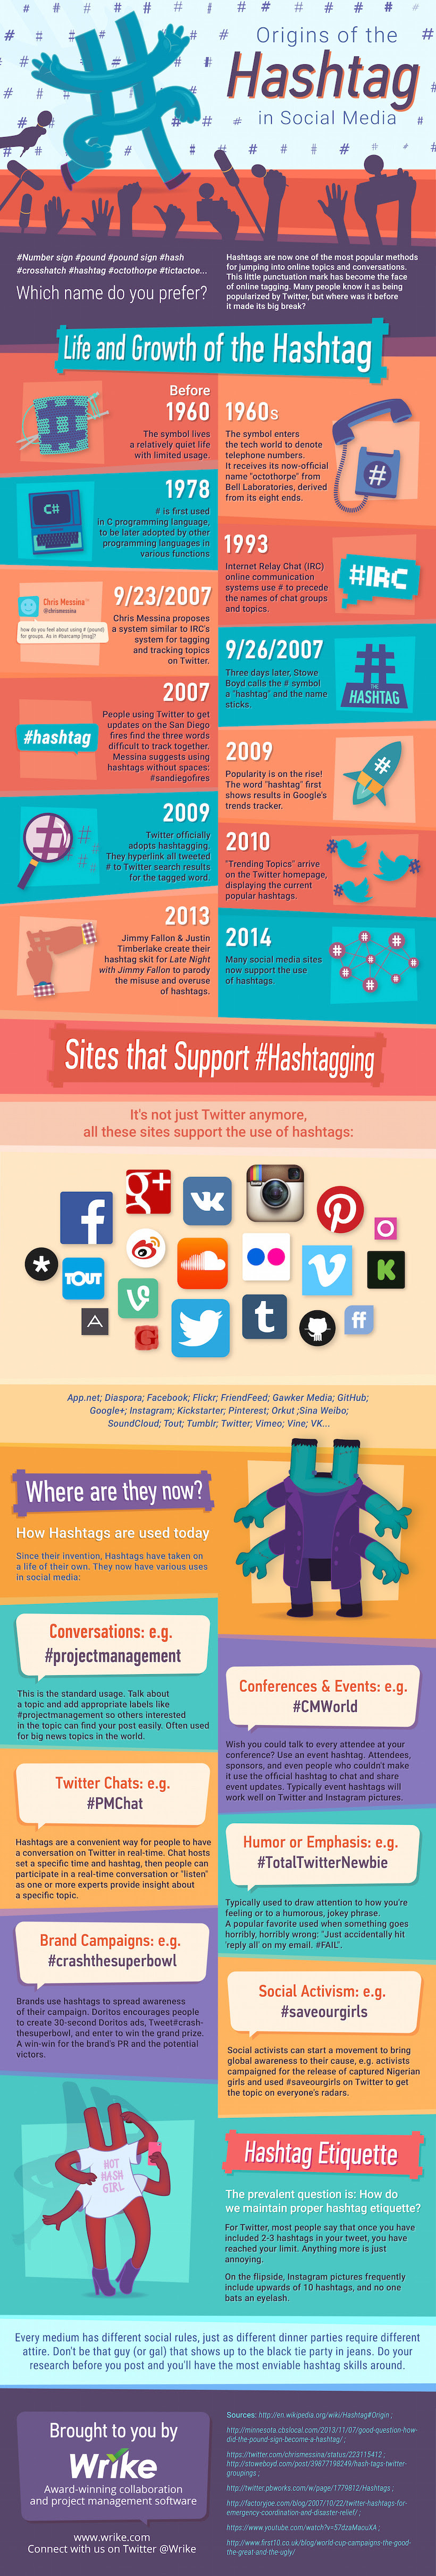 Origin Of The Hashtag In #SocialMedia - #Infographic